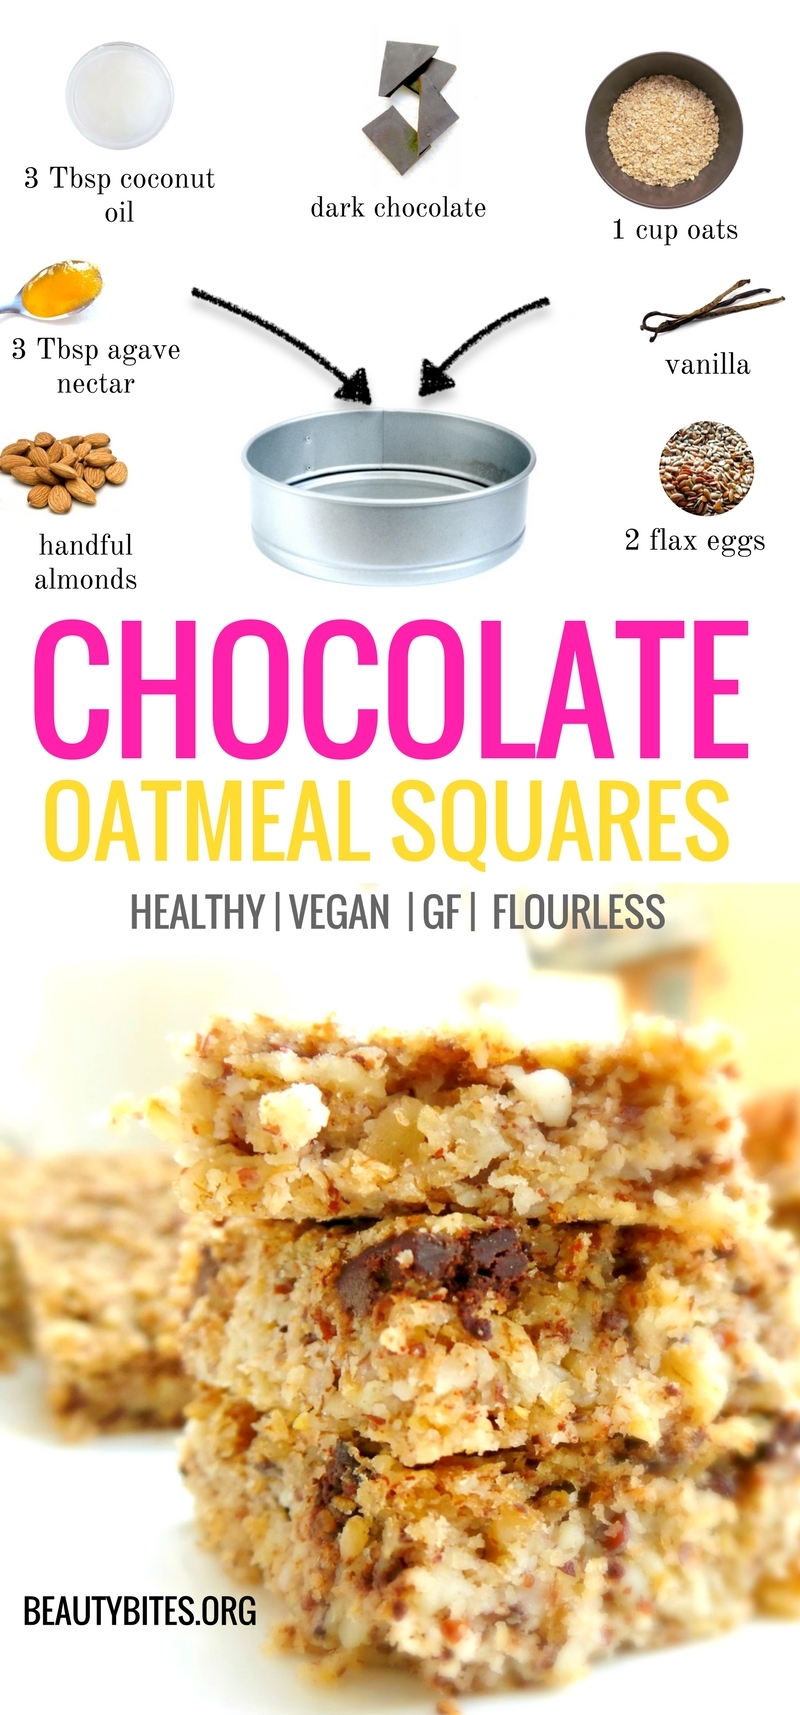 Flourless, healthy & vegan chocolate oatmeal bake! This is a great healthy breakfast recipe that is also great for meal prep as it keeps for up to 3 days. This easy breakfast recipe is vegan, gluten-free, dairy-free and high-fiber #easyrecipe #mealprep